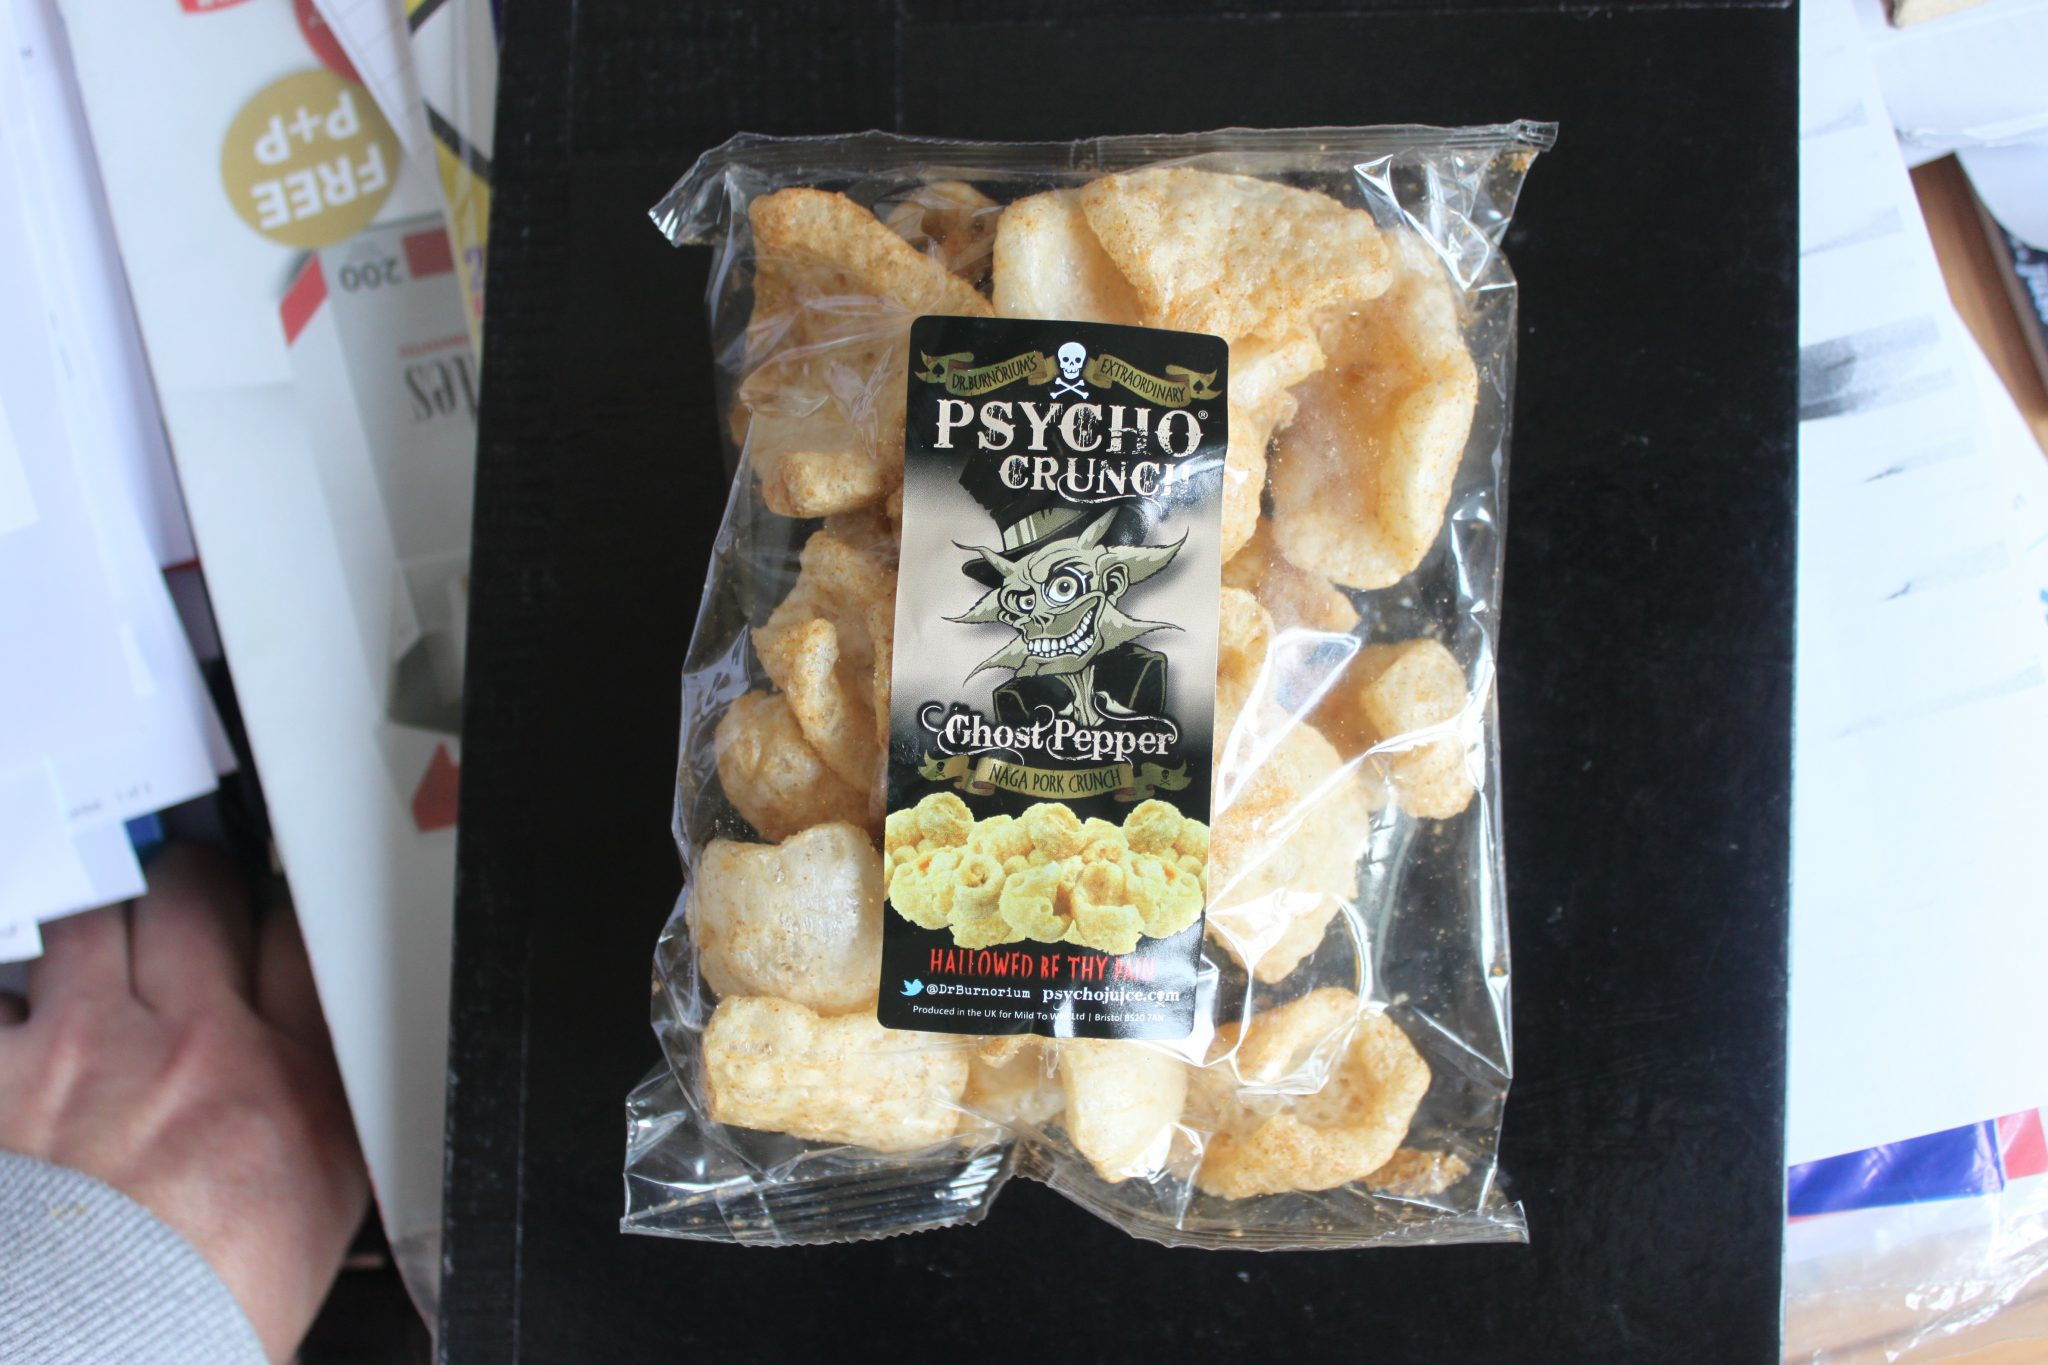 Dr Burnoriums Extraordinary Psycho Crunch Review - How to Review Pork Scratchings